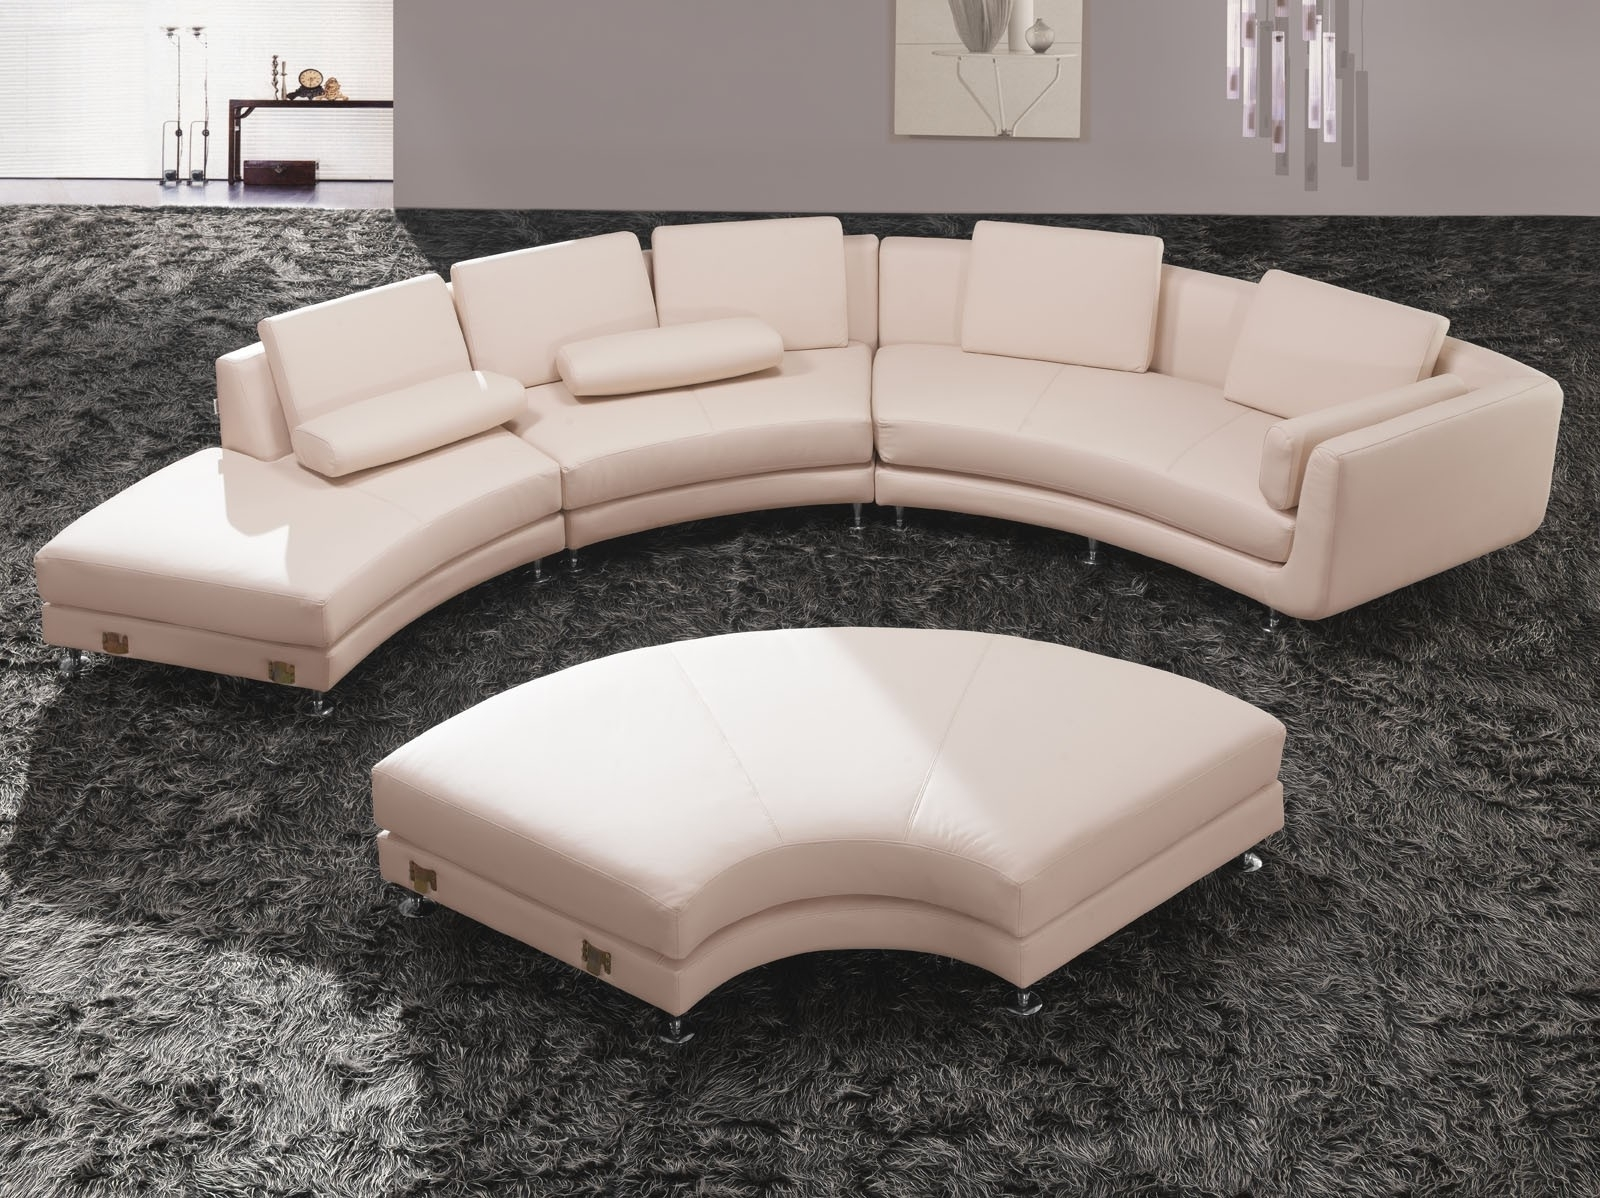 Sofa : Glamorous Round Sectional Sofa Bed Curved Leather Tufted Inside Current Circular Sofa Chairs (View 19 of 20)